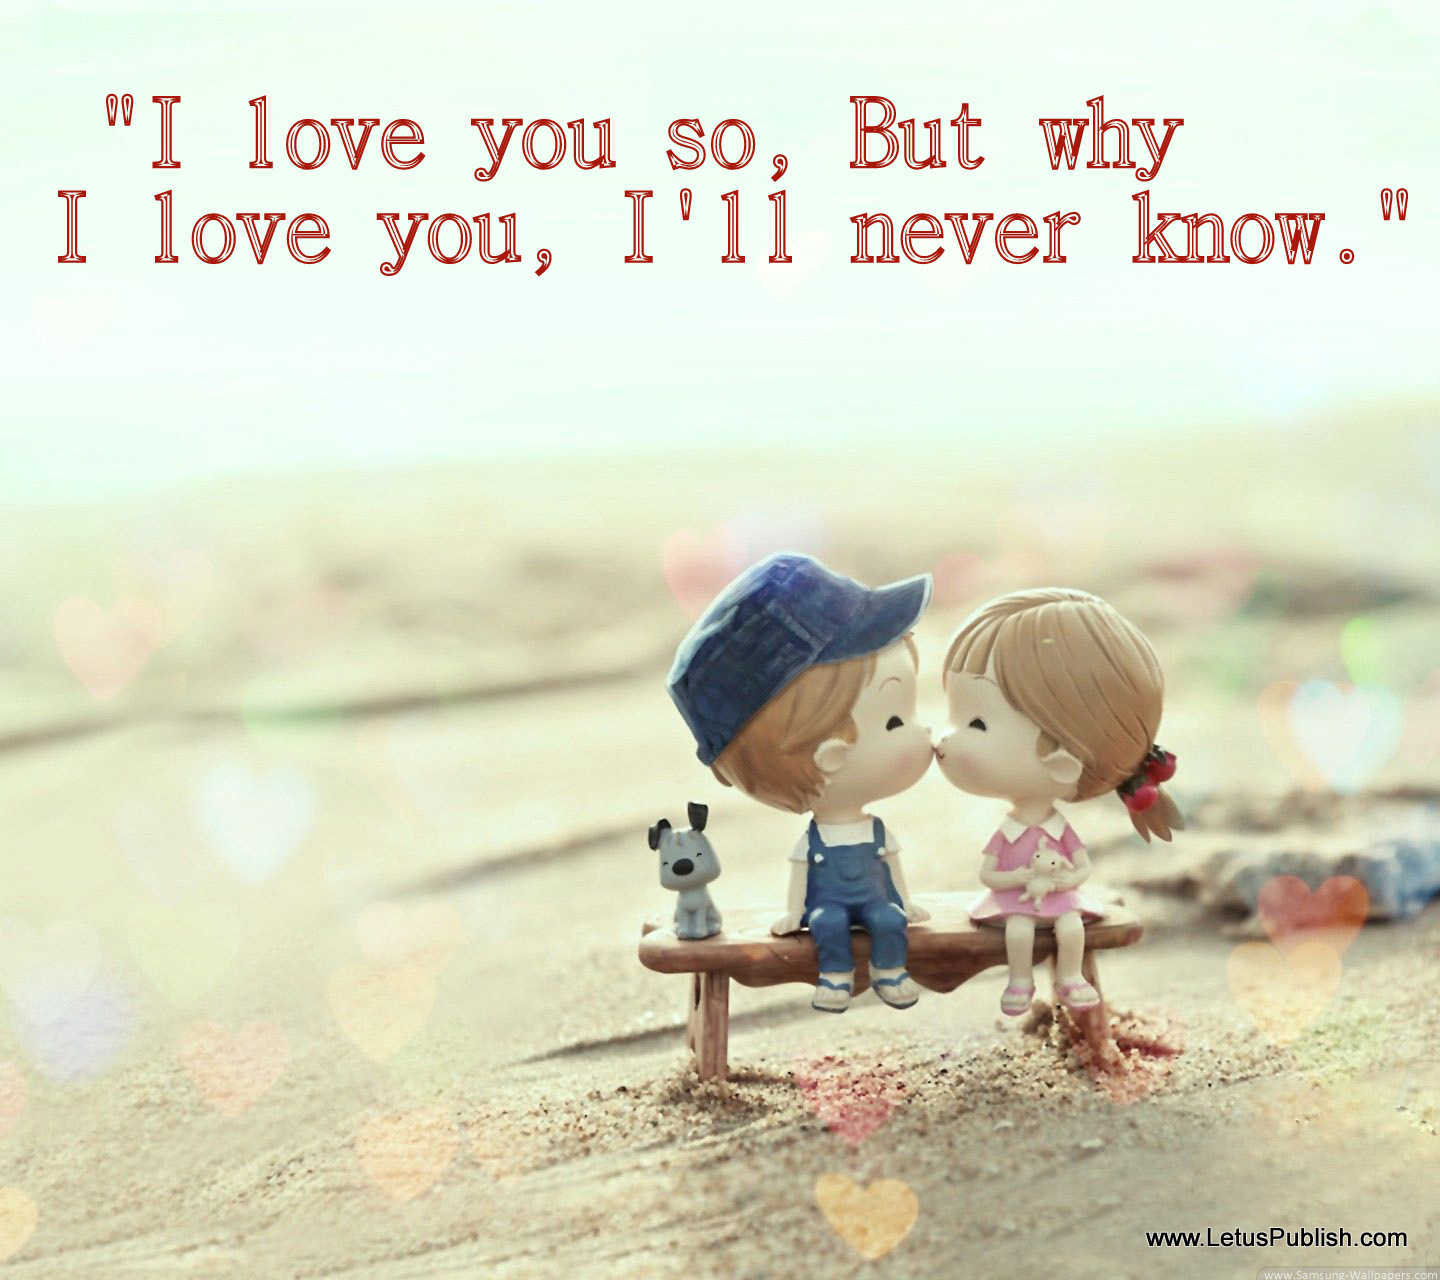 cute Love Hd Wallpapers With Quotes : Beautiful Romantic Love HD Wallpapers For couples - Let Us Publish